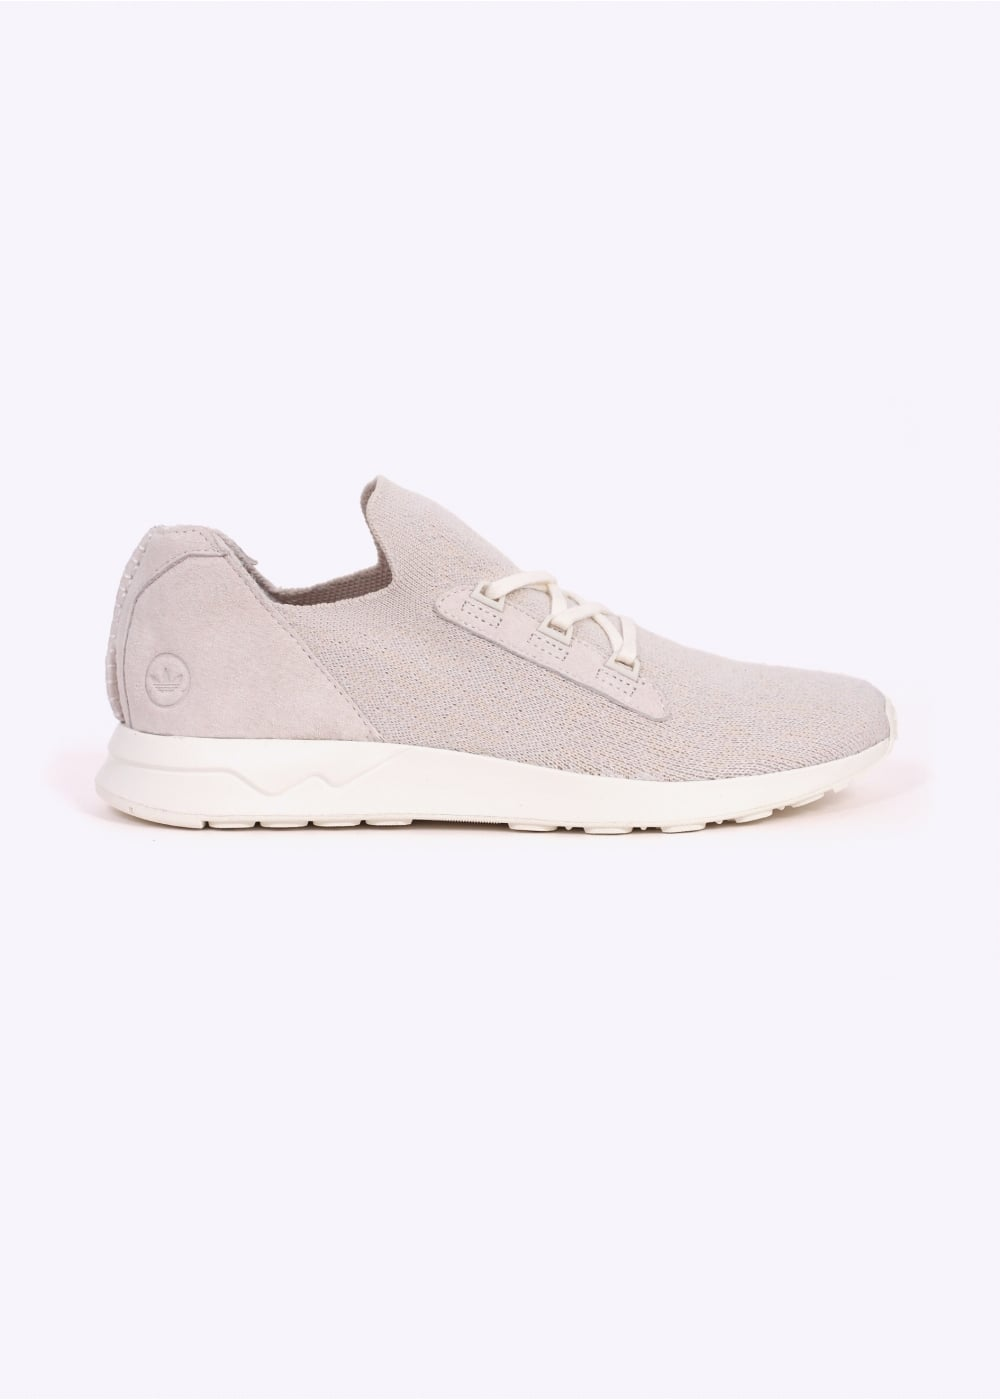 2c8416a7e adidas Originals Footwear x Wings   Horns ZX Flux PK - Off White ...